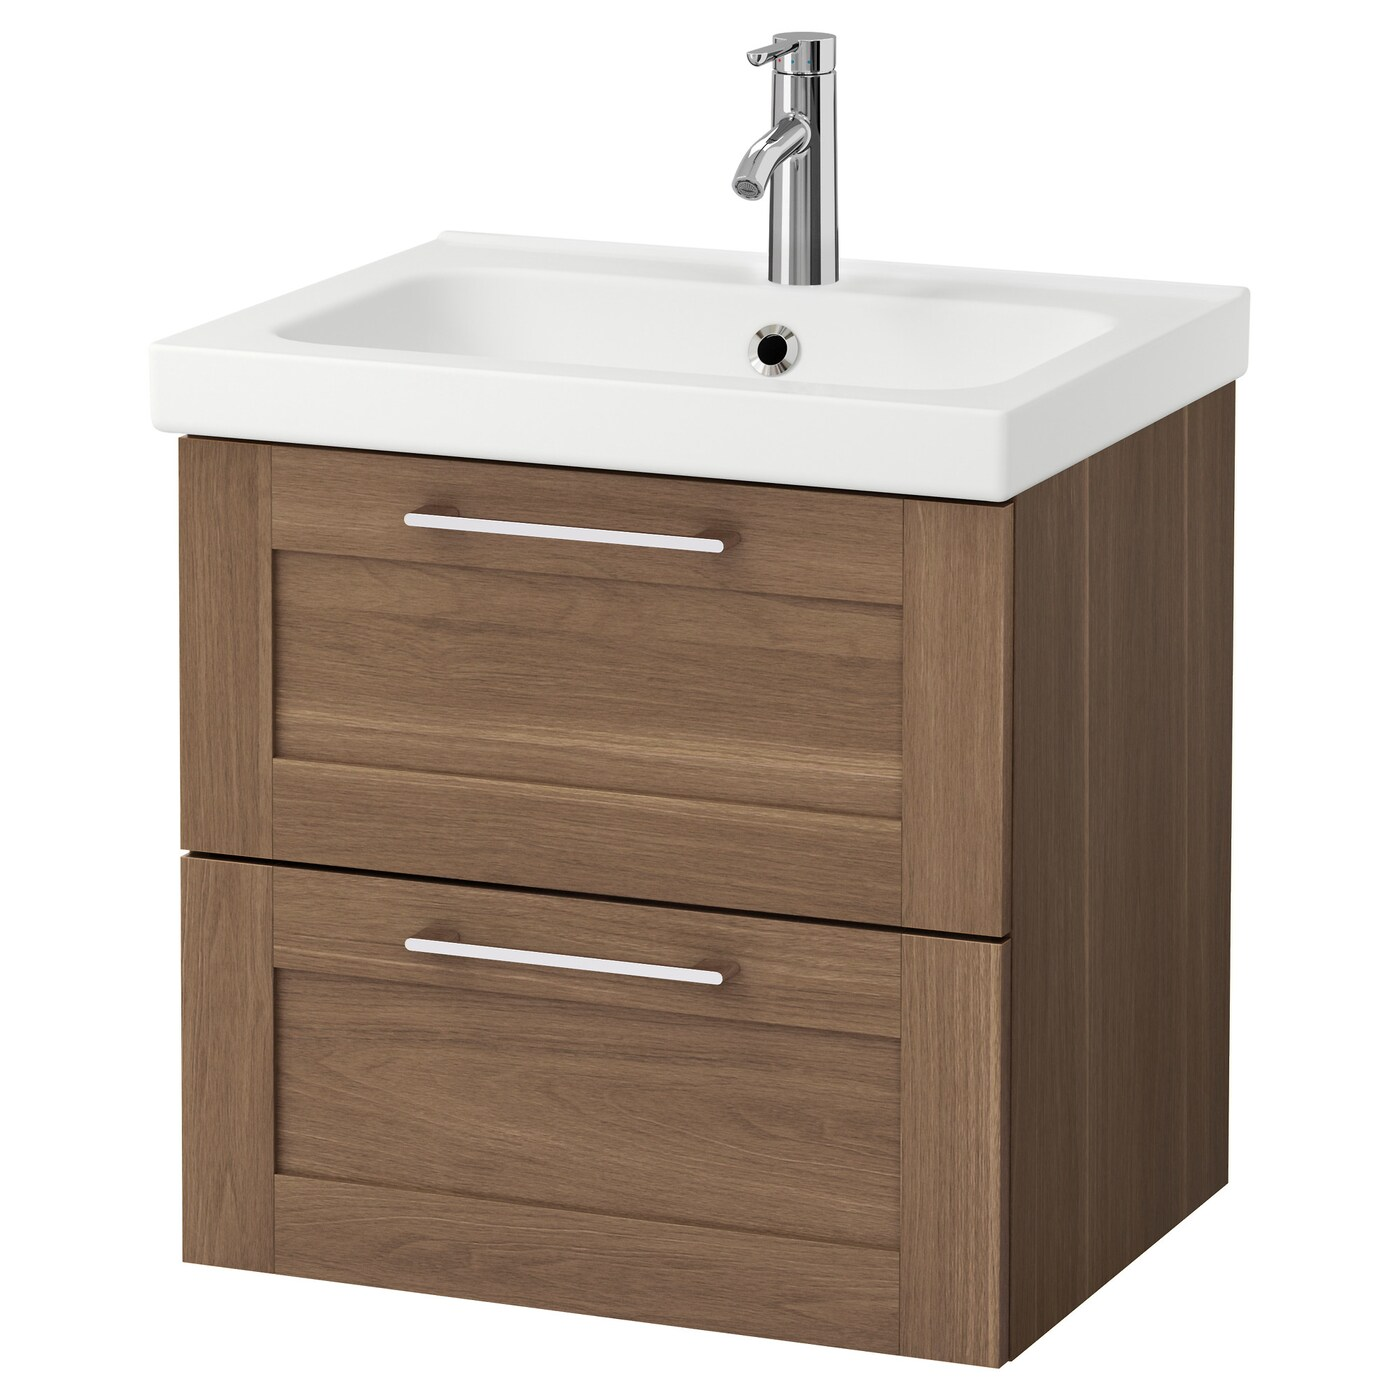 Bathroom Sinks Nottingham bathroom vanity units - sinks, taps & cabinets - ikea